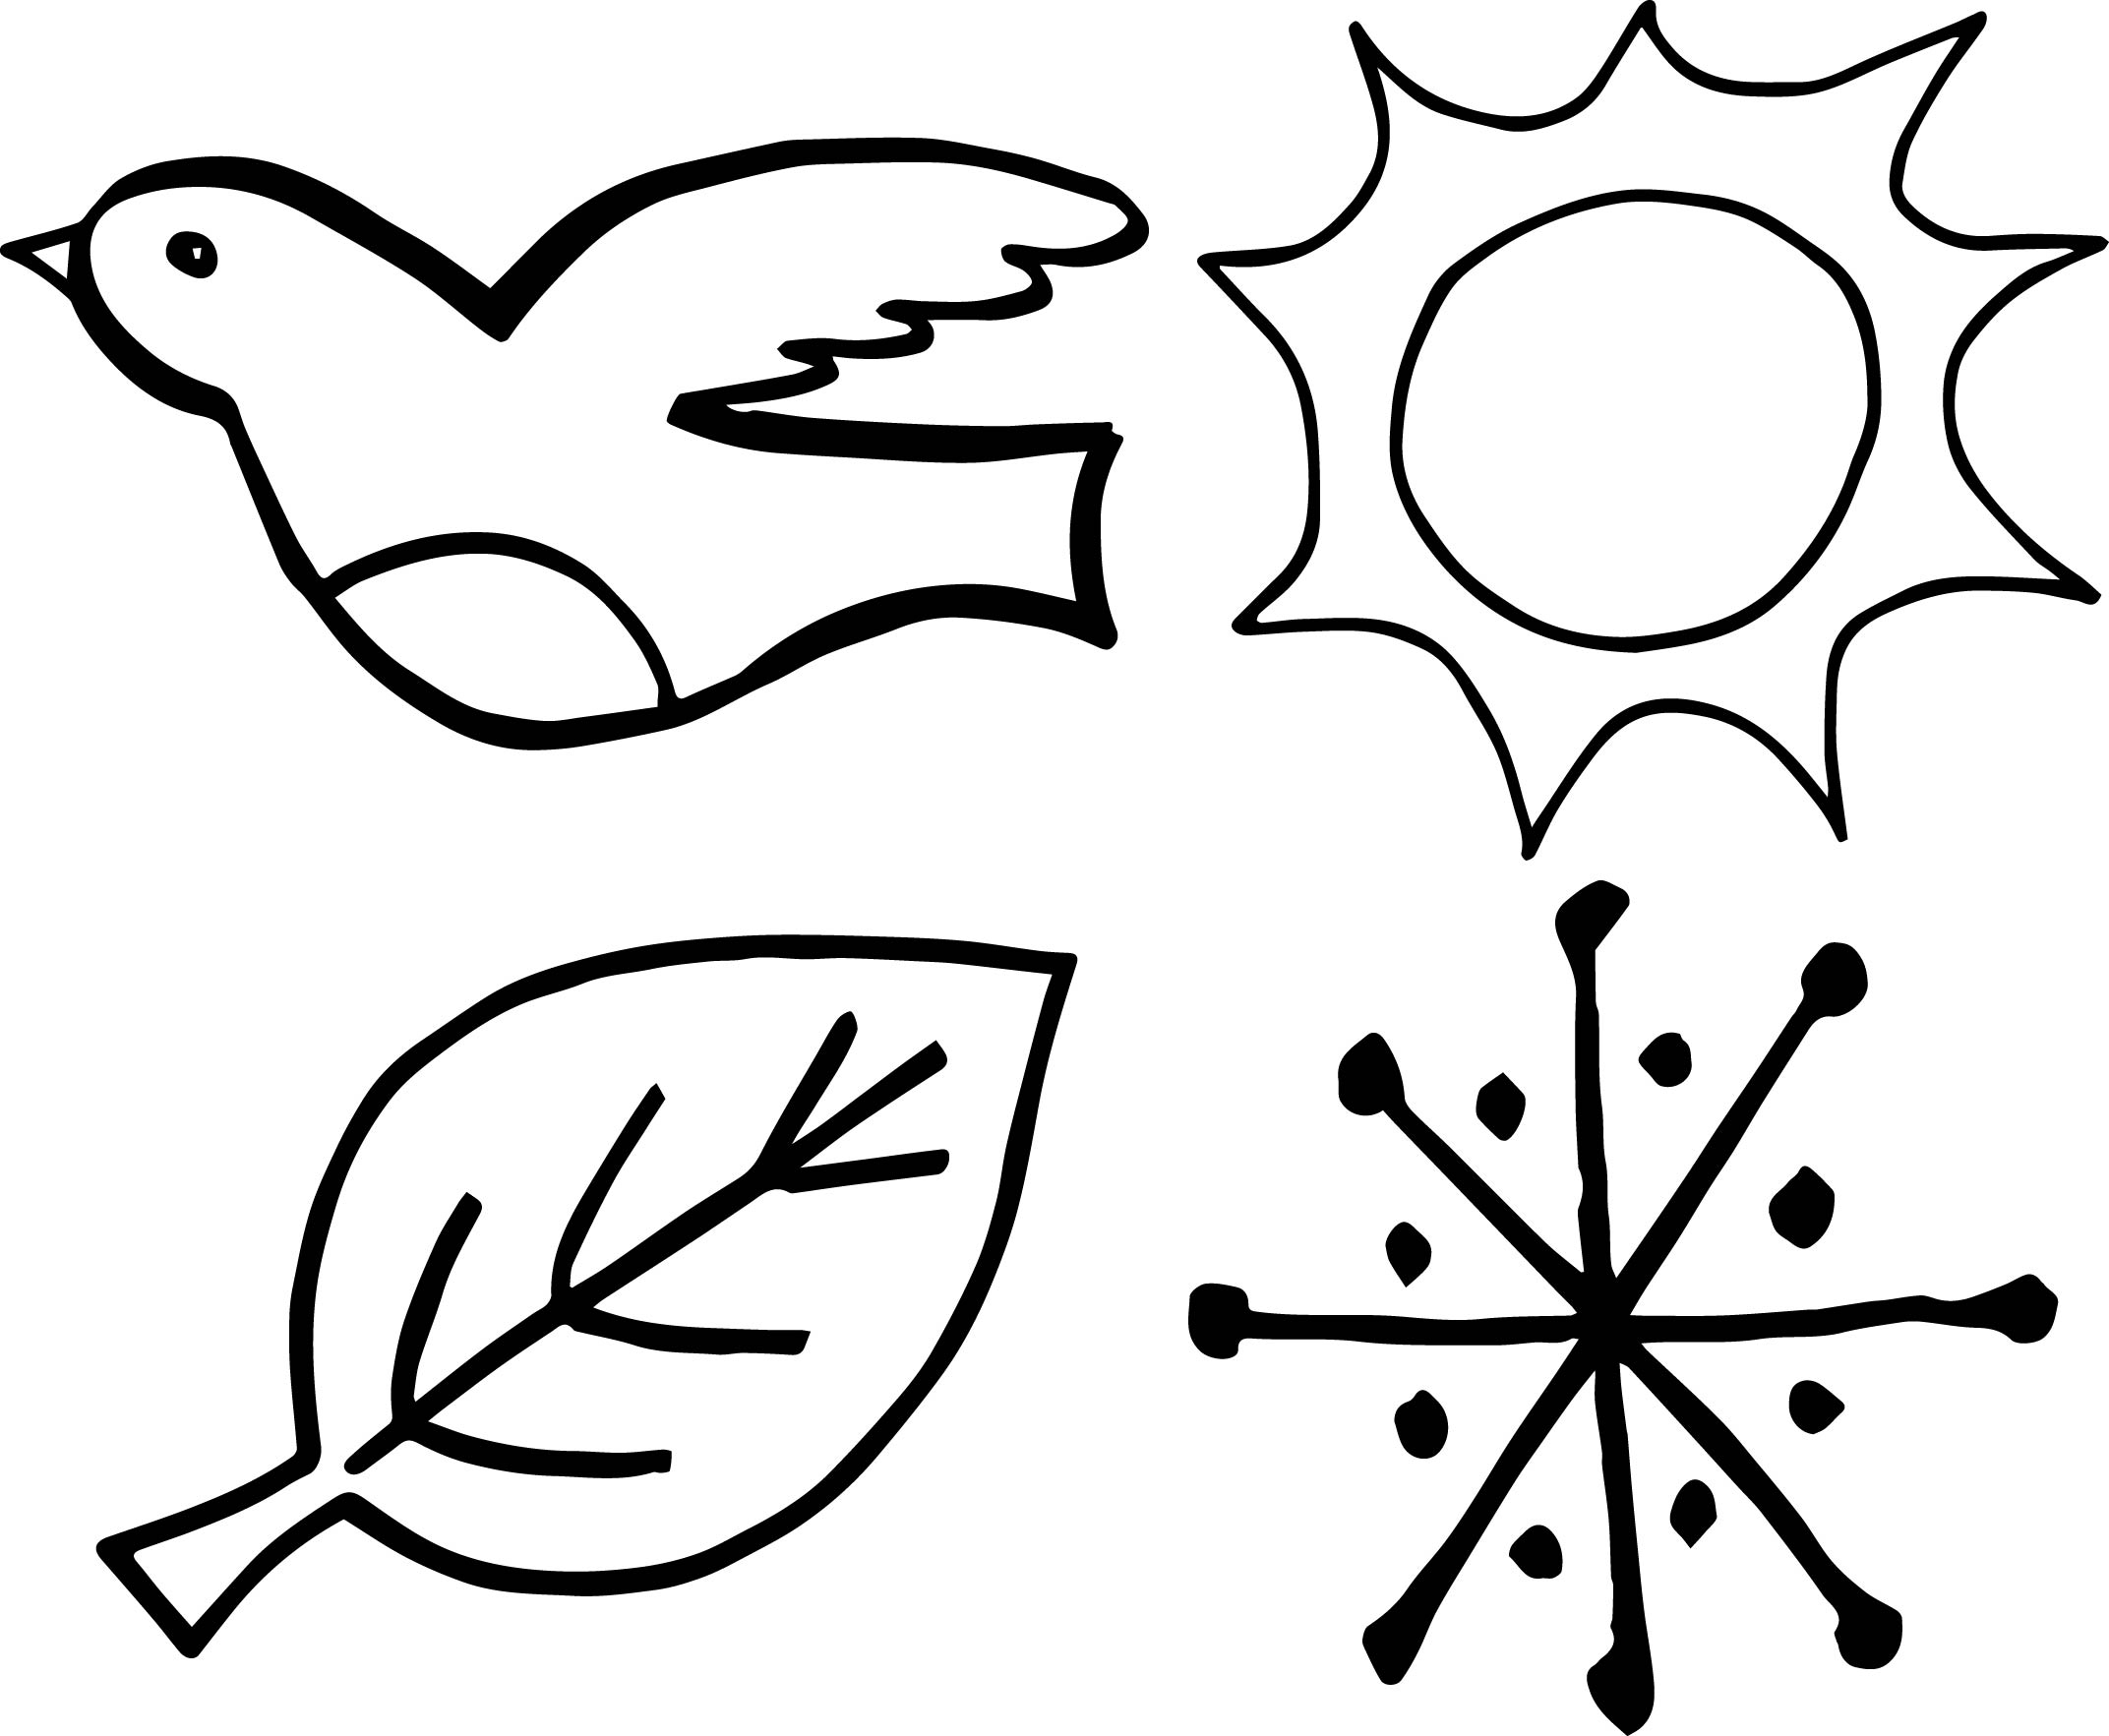 4 seasons bird leaf sun snow coloring page for Seasonal coloring pages